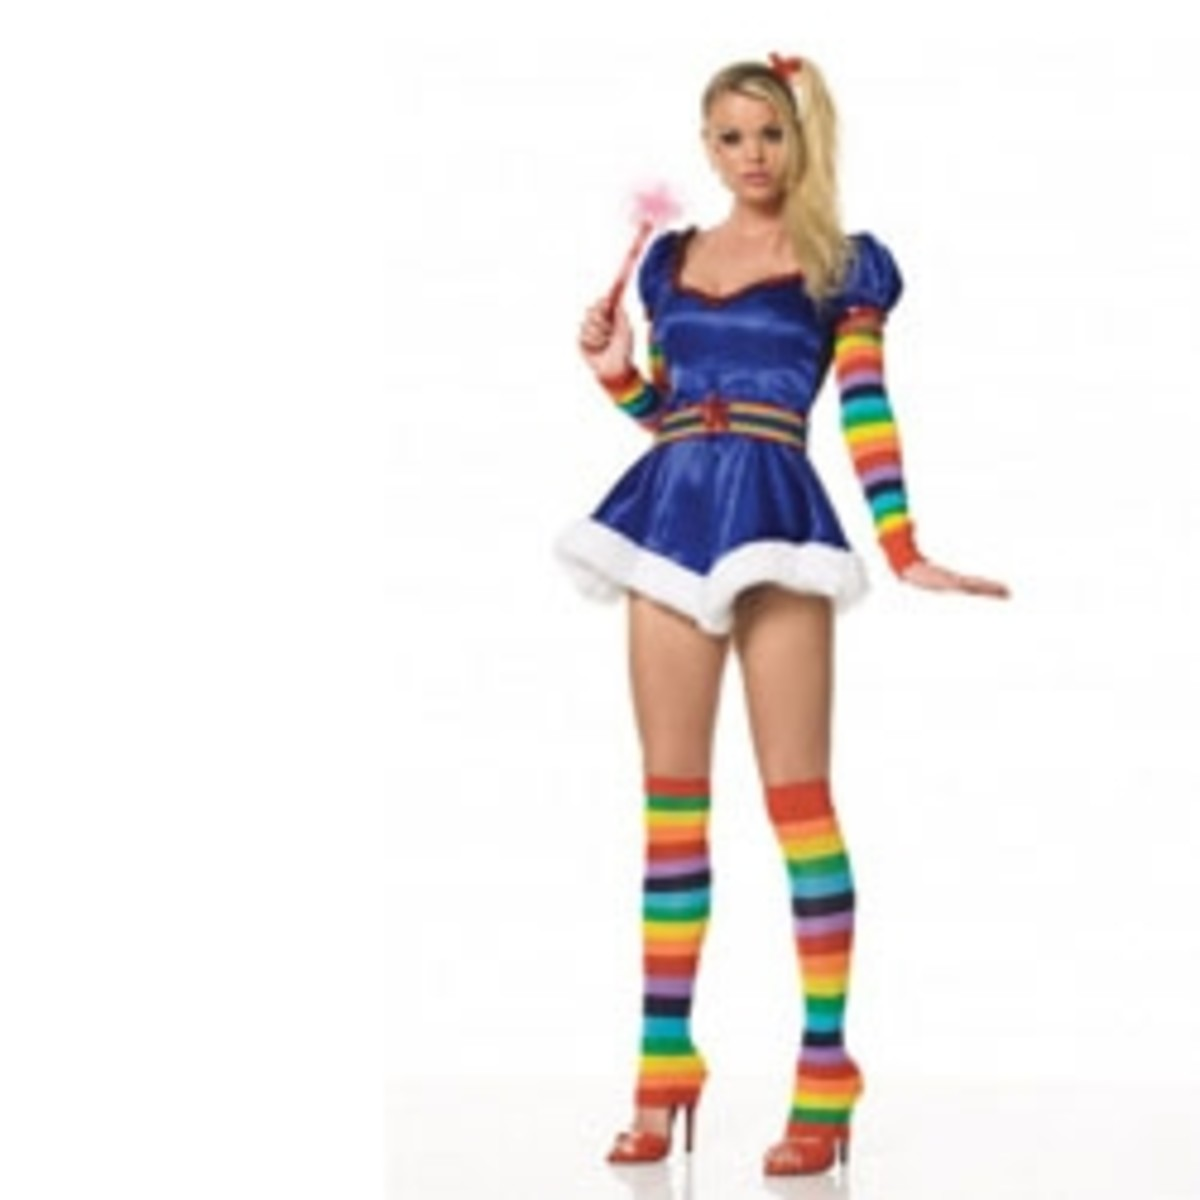 How to get an awesome Rainbow Brite costume for Halloween